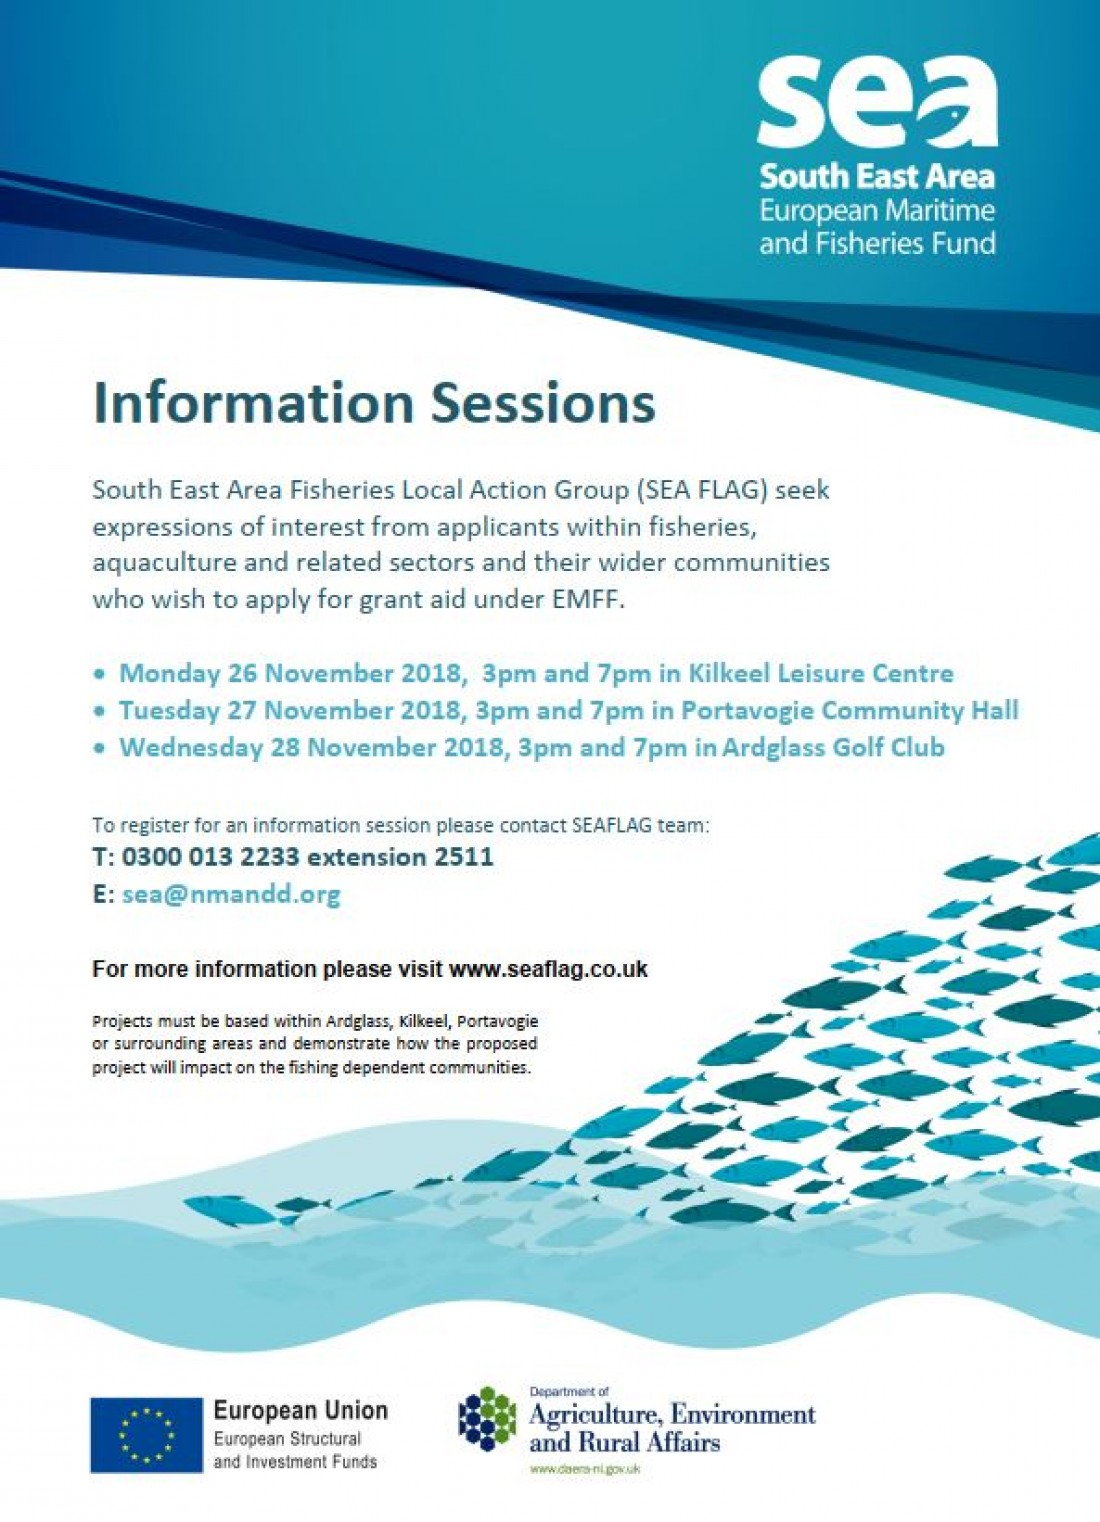 South East Area Fisheries Local Action Group Information Session